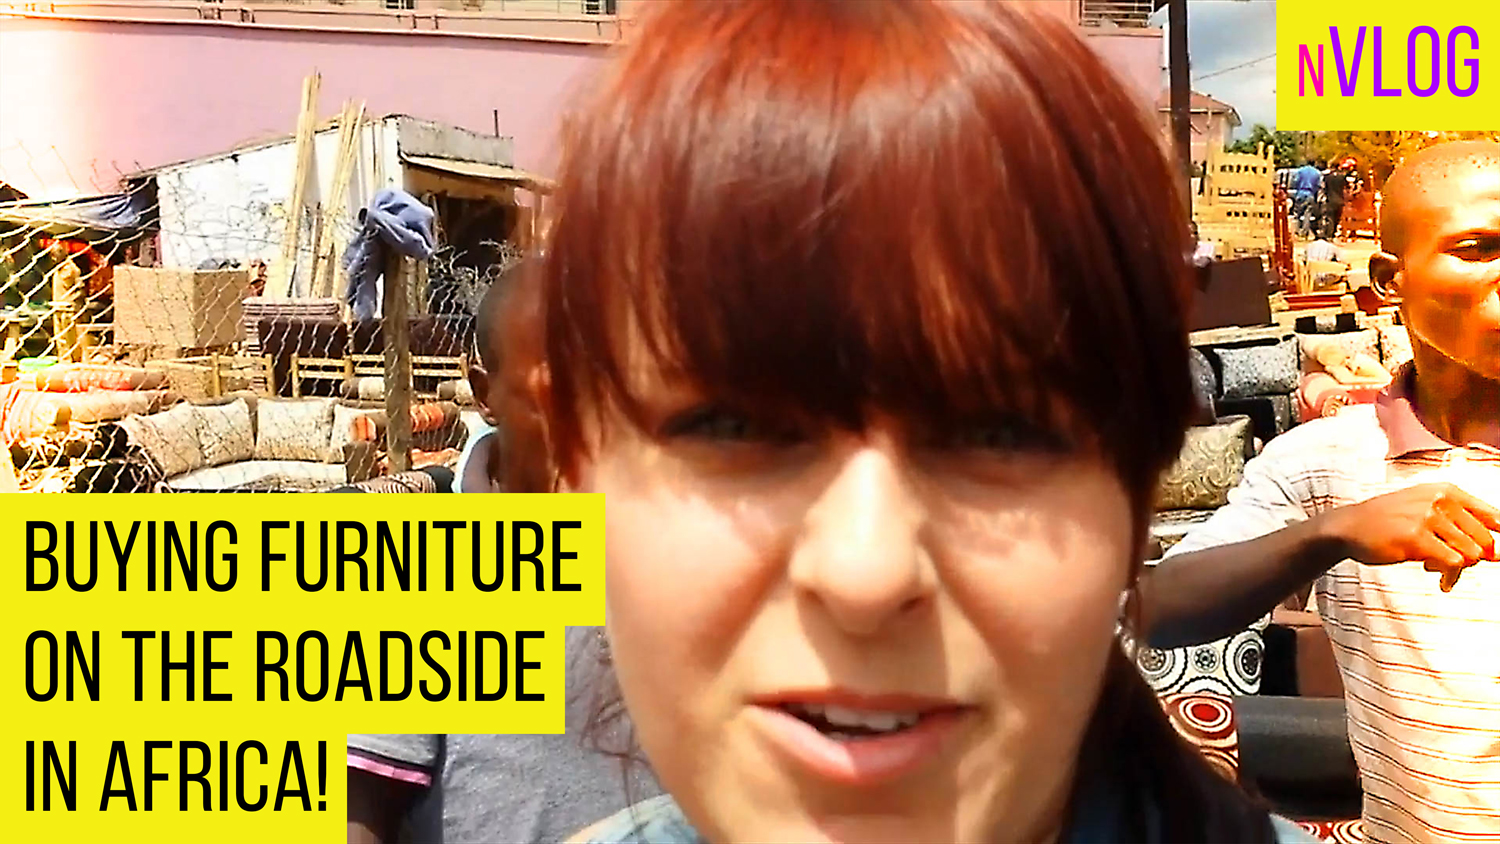 Apartment Tour & Buying Furniture on the Street in Africa